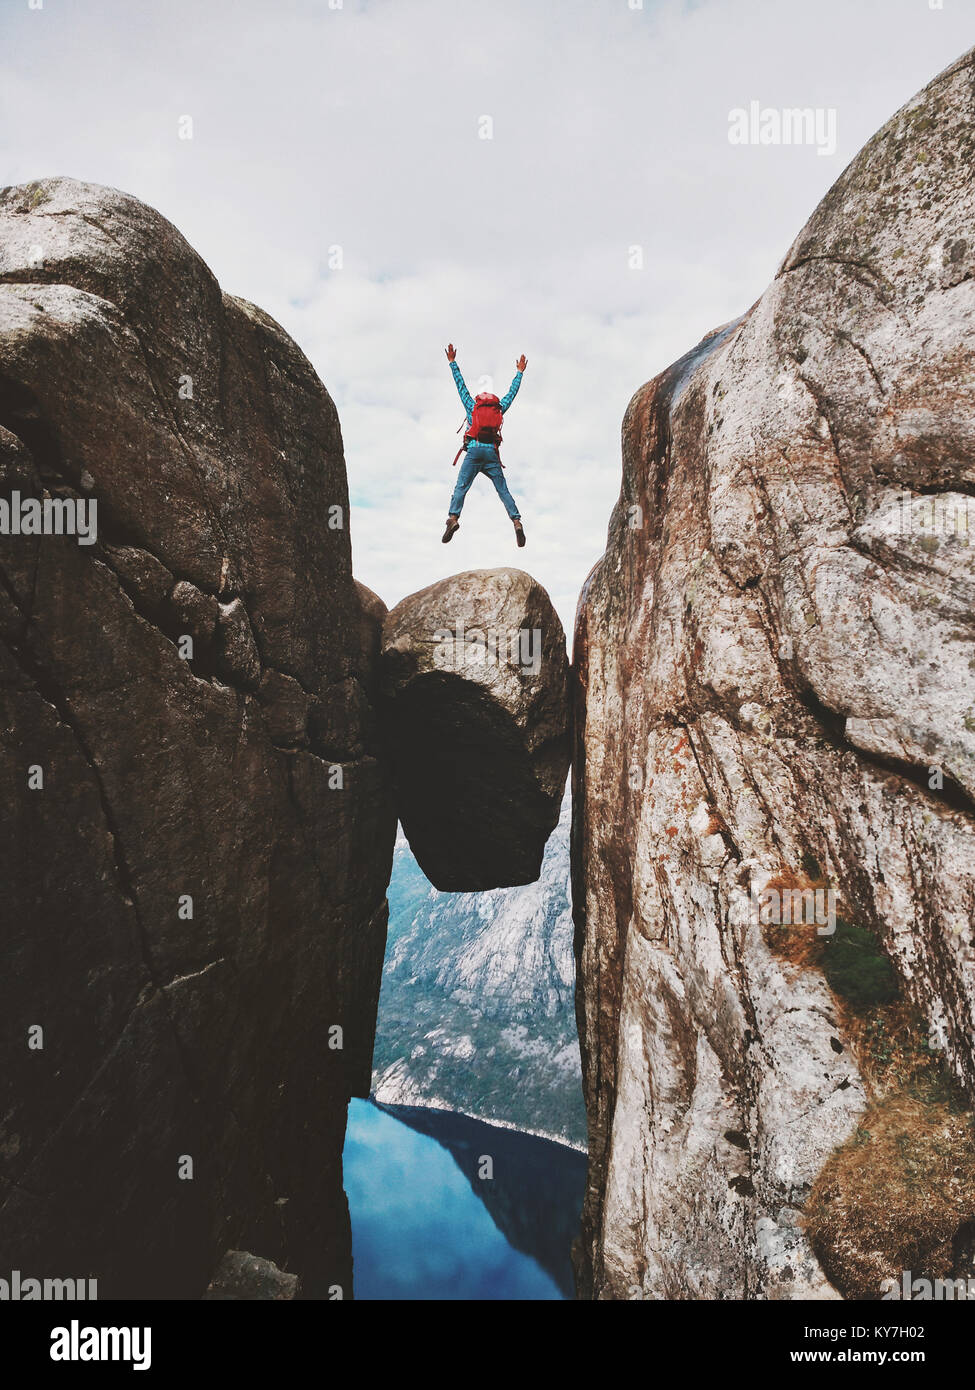 Man jumping over Kjeragbolten Travel in Norway Kjerag mountains extreme vacations adventure tourist happy emotions - Stock Image